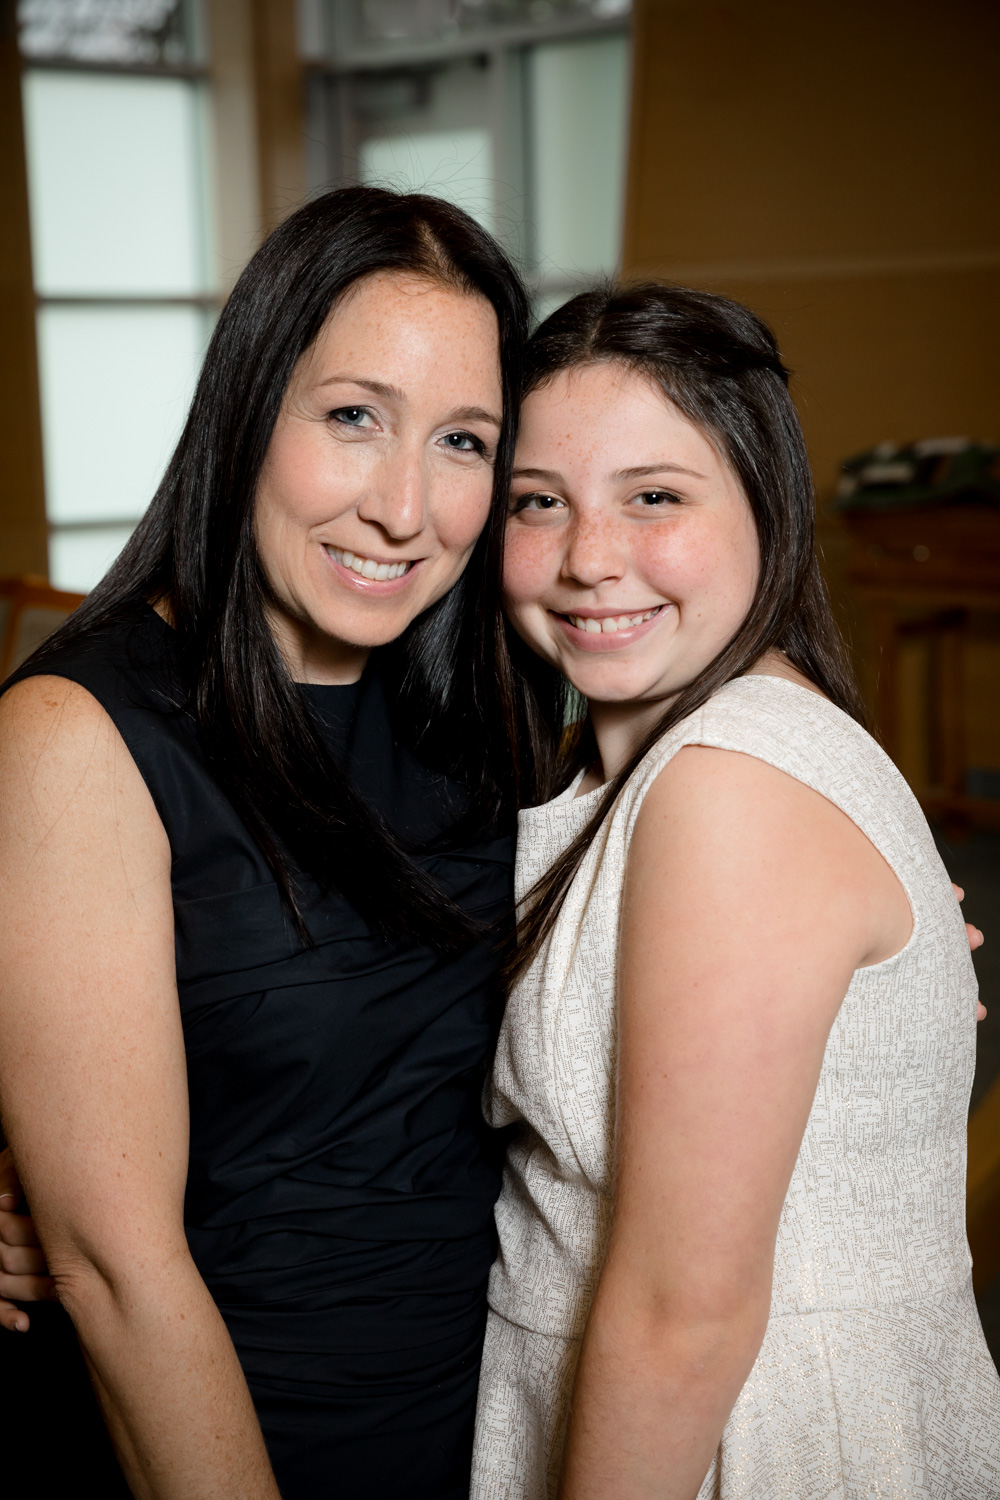 26-north-studios-bat-mitzvah-temple-beth-shalom-needham-verve-natick-2.jpg